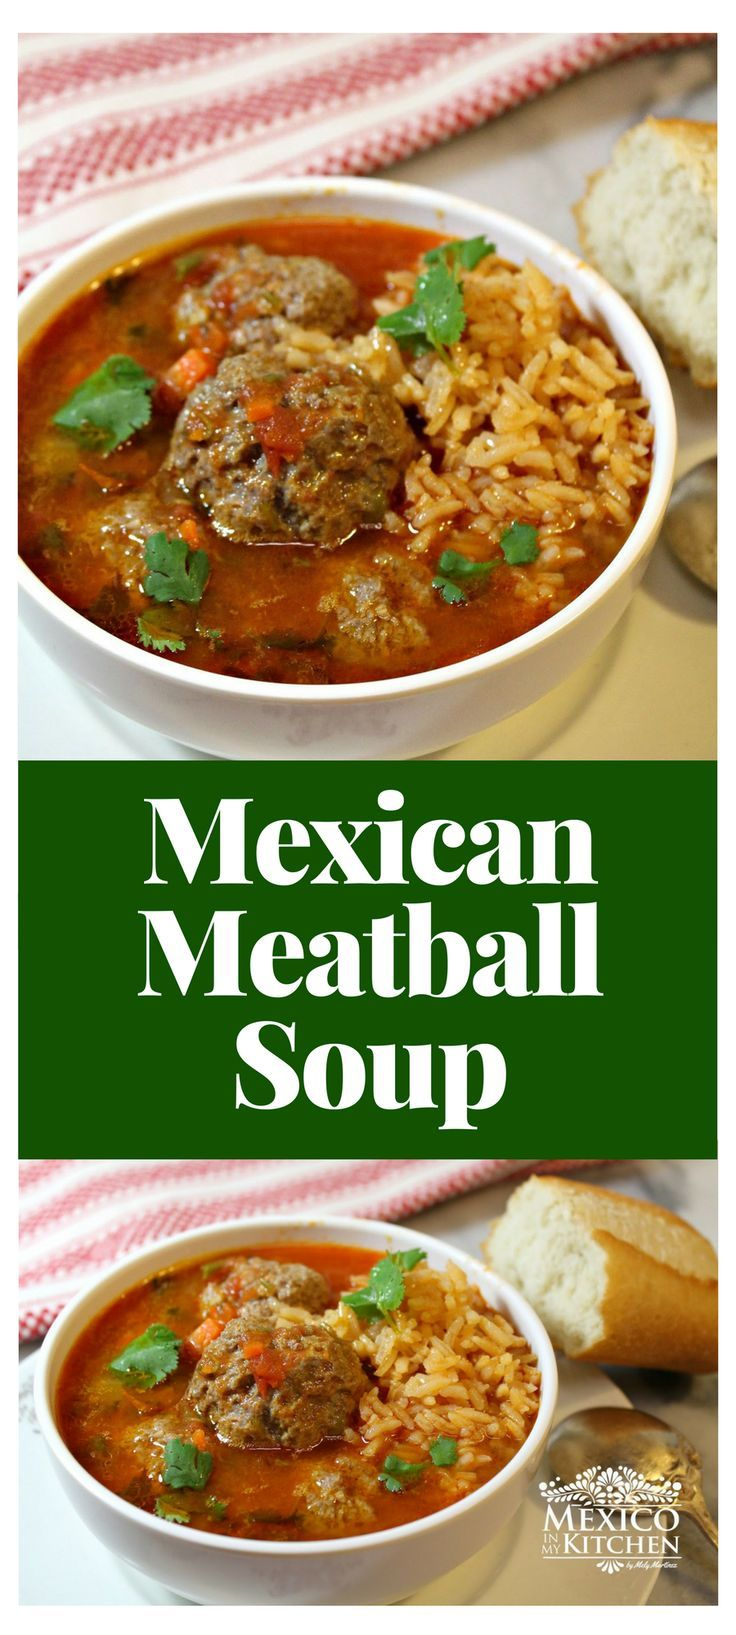 There's norocket science here, just an easy process with common ingredients and you'vegot an extraordinary soup that I'm sure everyone in your family, even thelittle ones, will love.#recipe #mexican #food #soups